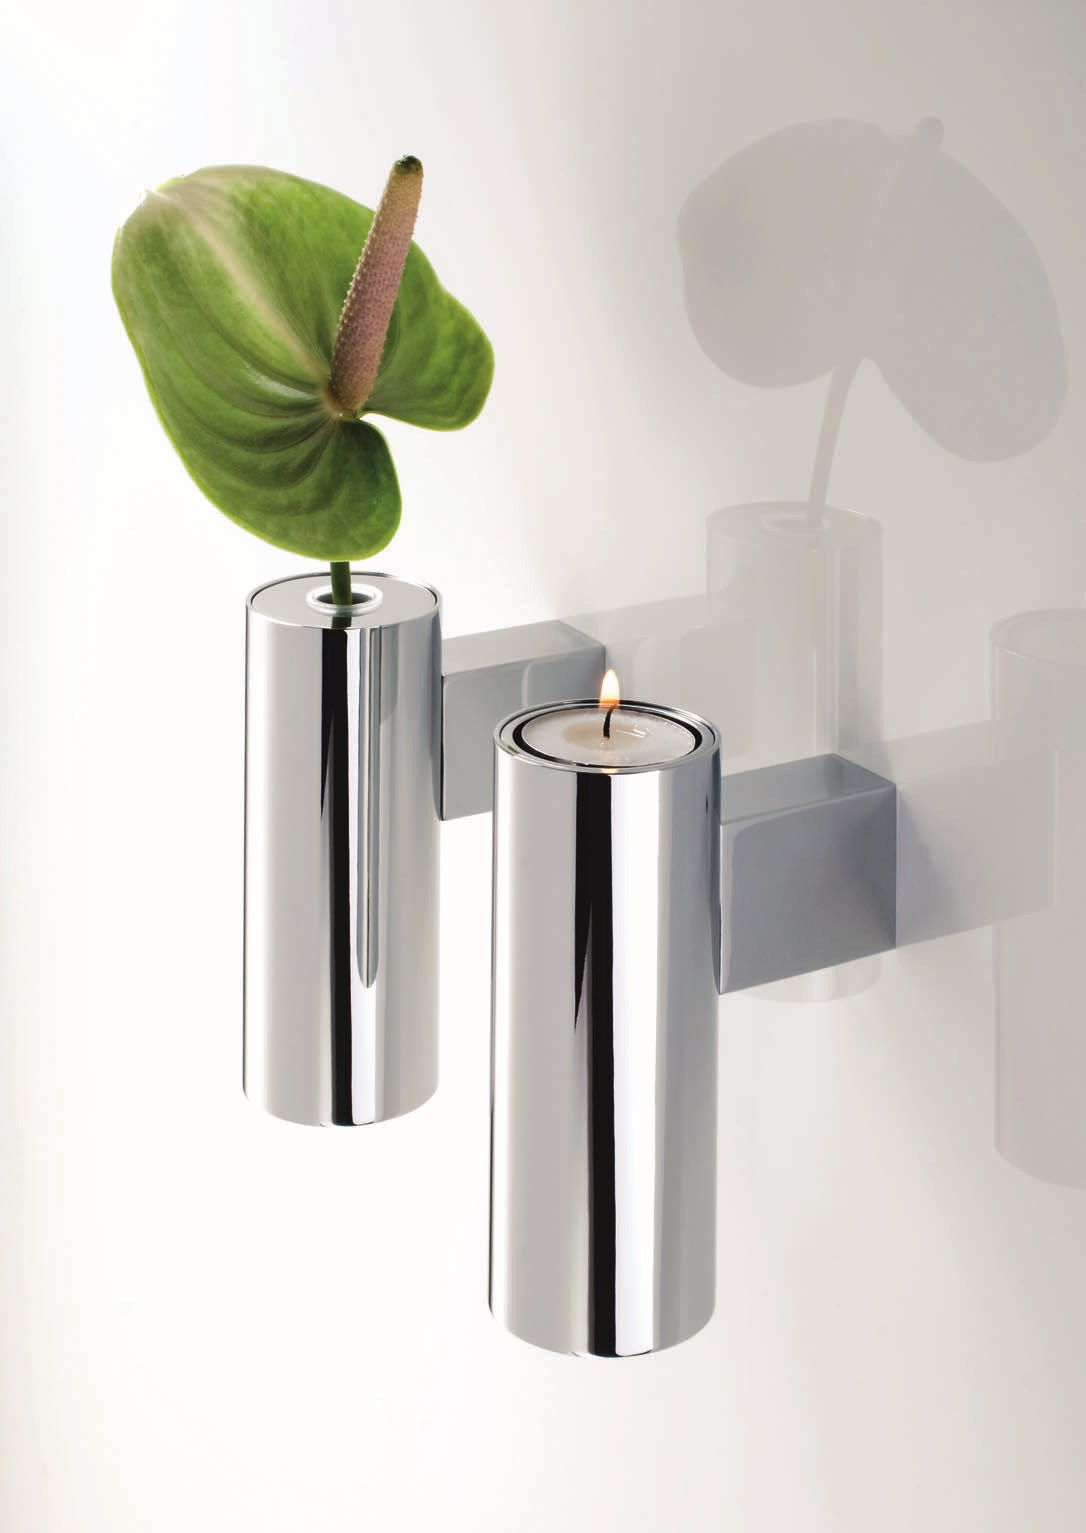 CHROME PLATED CANDLE HOLDER TB VKH TUBE COLLECTION BY ... on Decorative Wall Sconces Candle Holders Chrome id=42591